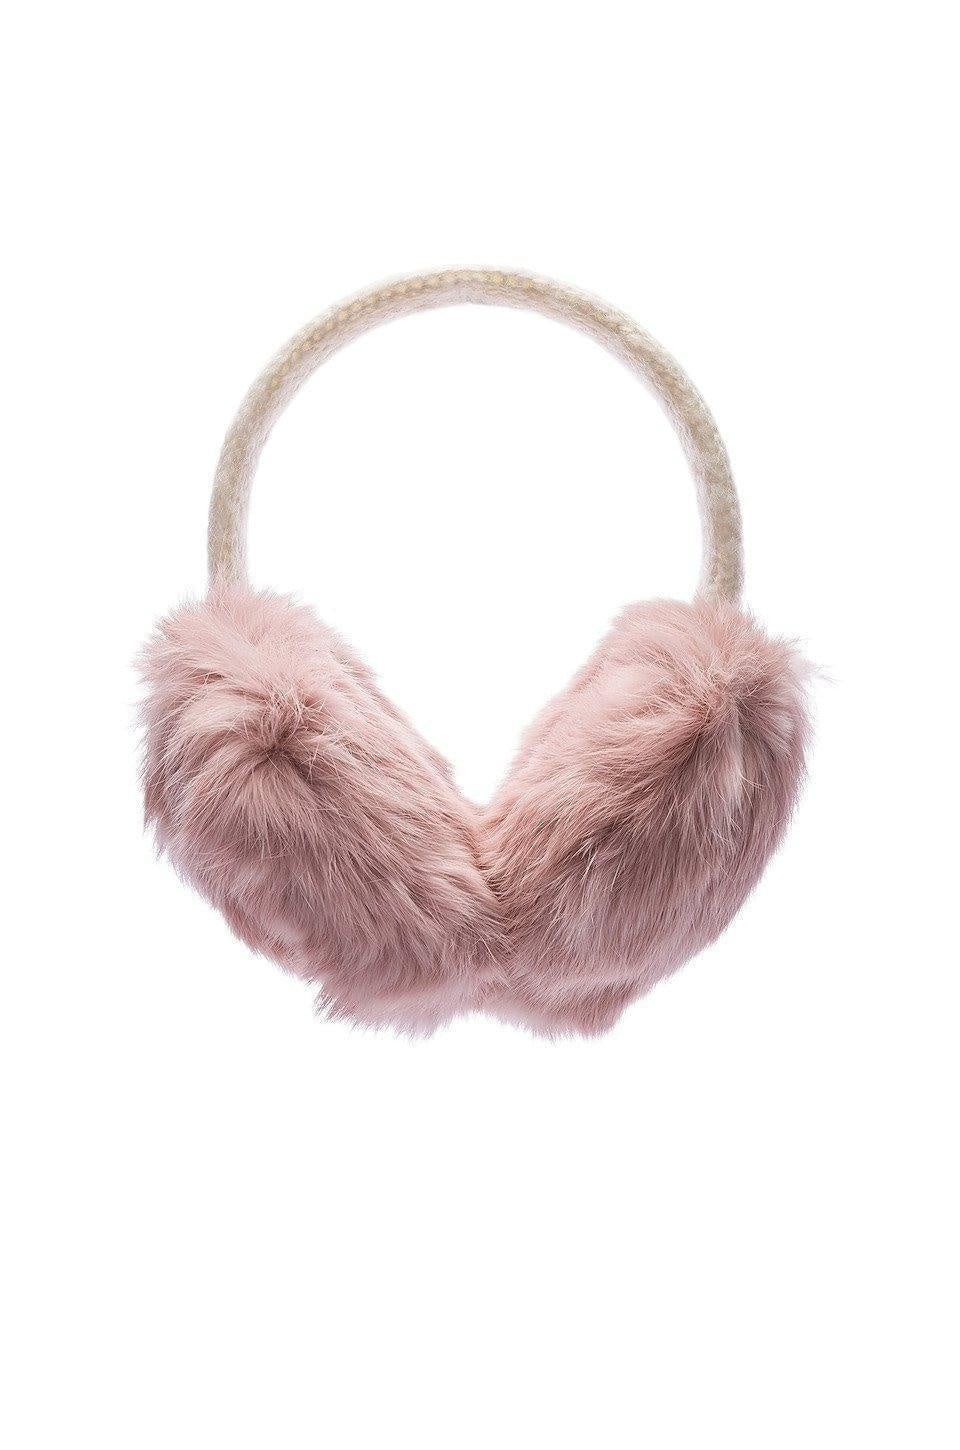 Hat Attack Knit Rabbit Earmuffs Brand New! - Your Fashions For Less